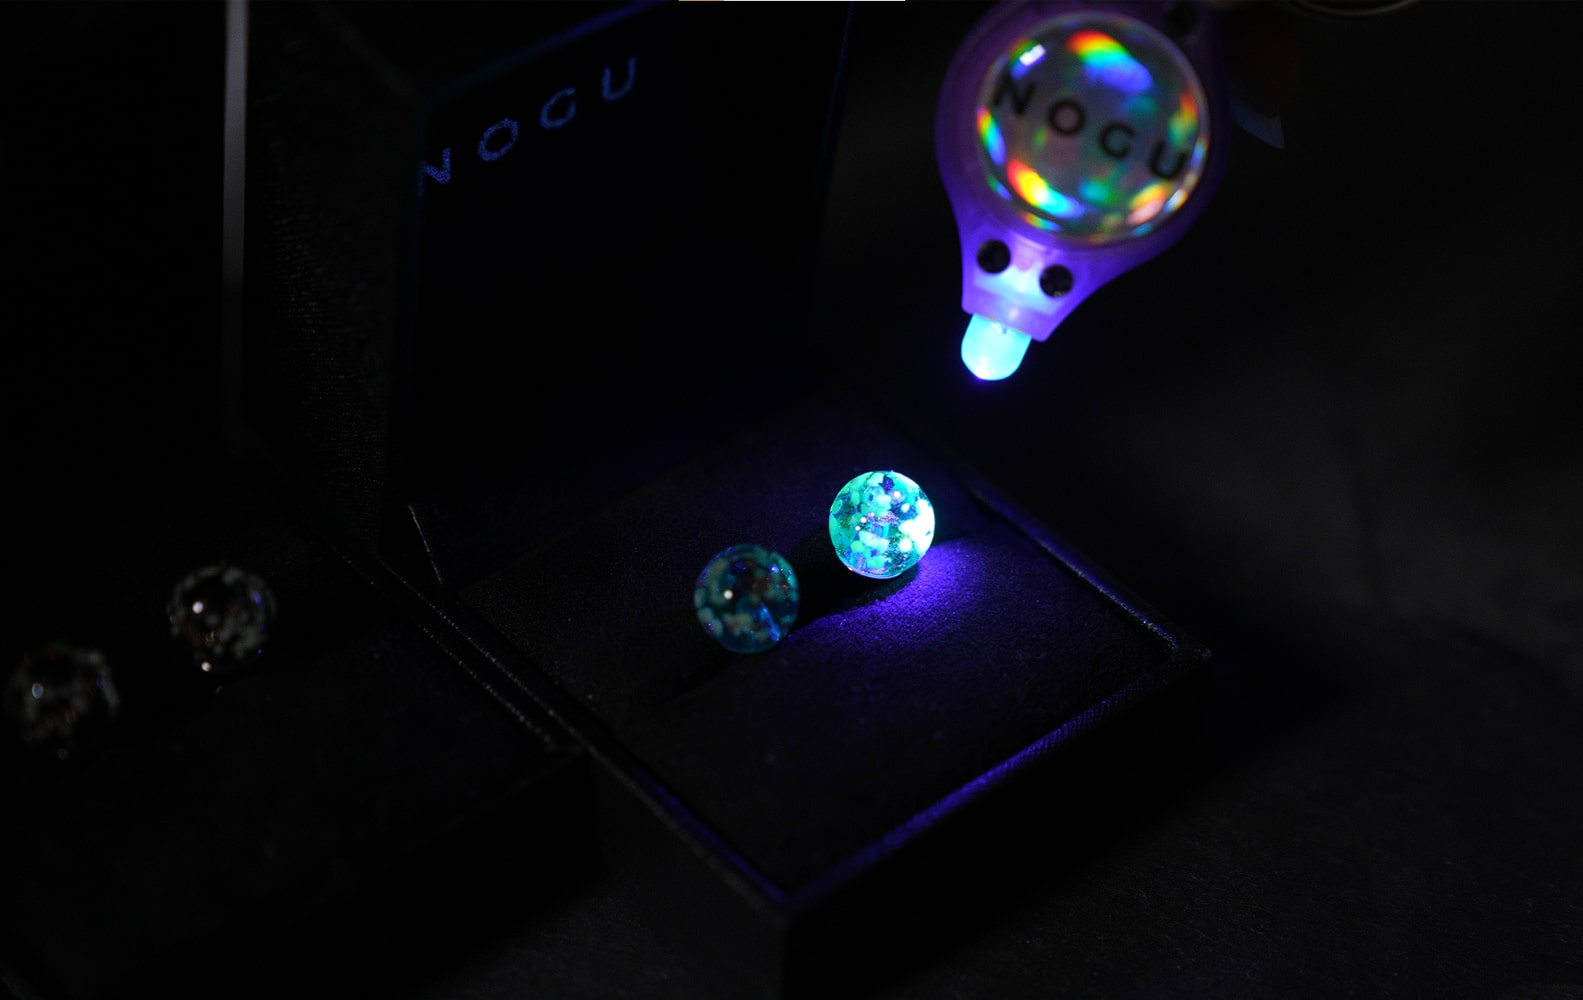 NOGU UV Charging Black Light for Glow in the Dark Firefly Glass jewelry Collection (Glowing earrings, necklaces, bracelets)